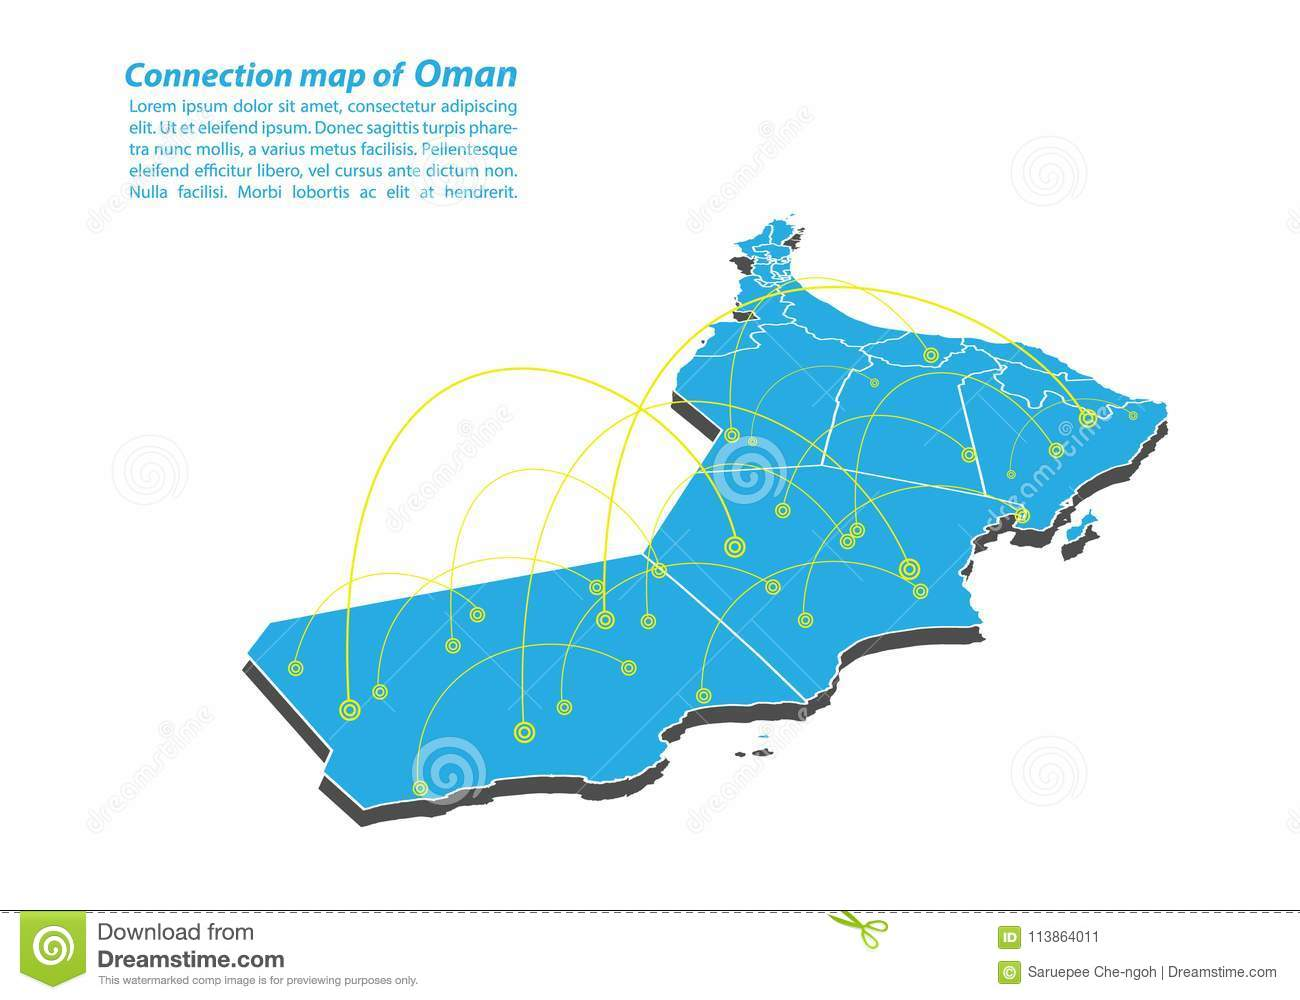 Modern Of Oman Map Connections Network Design, Best Internet Concept